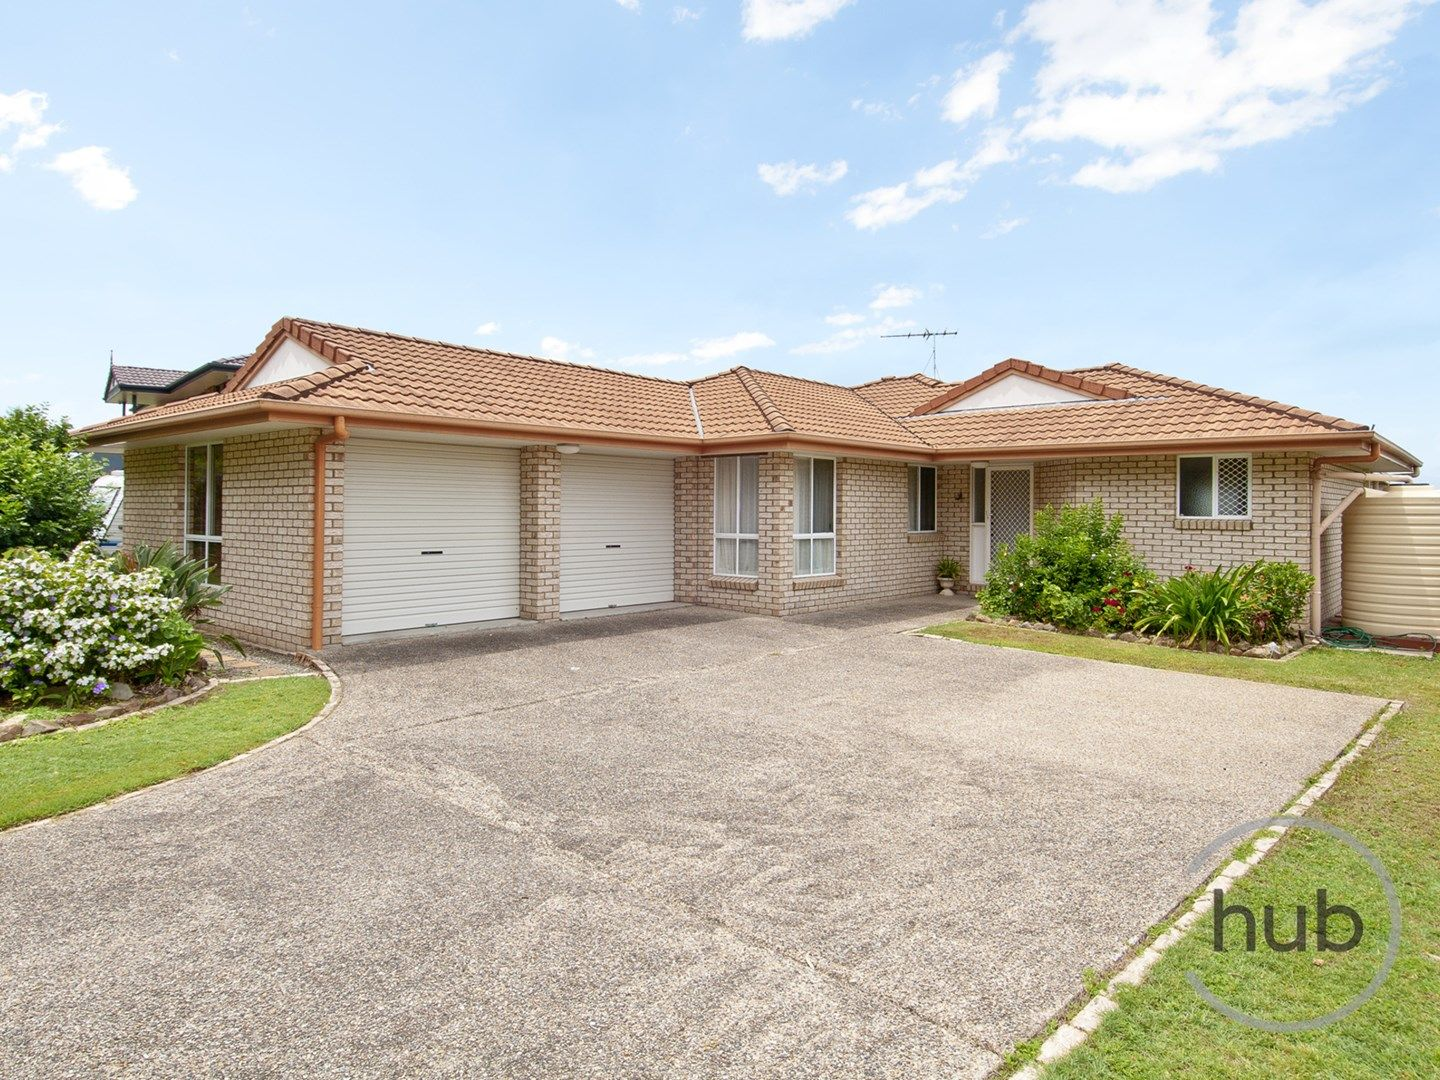 7 Barnhill Tce, Edens Landing QLD 4207, Image 0